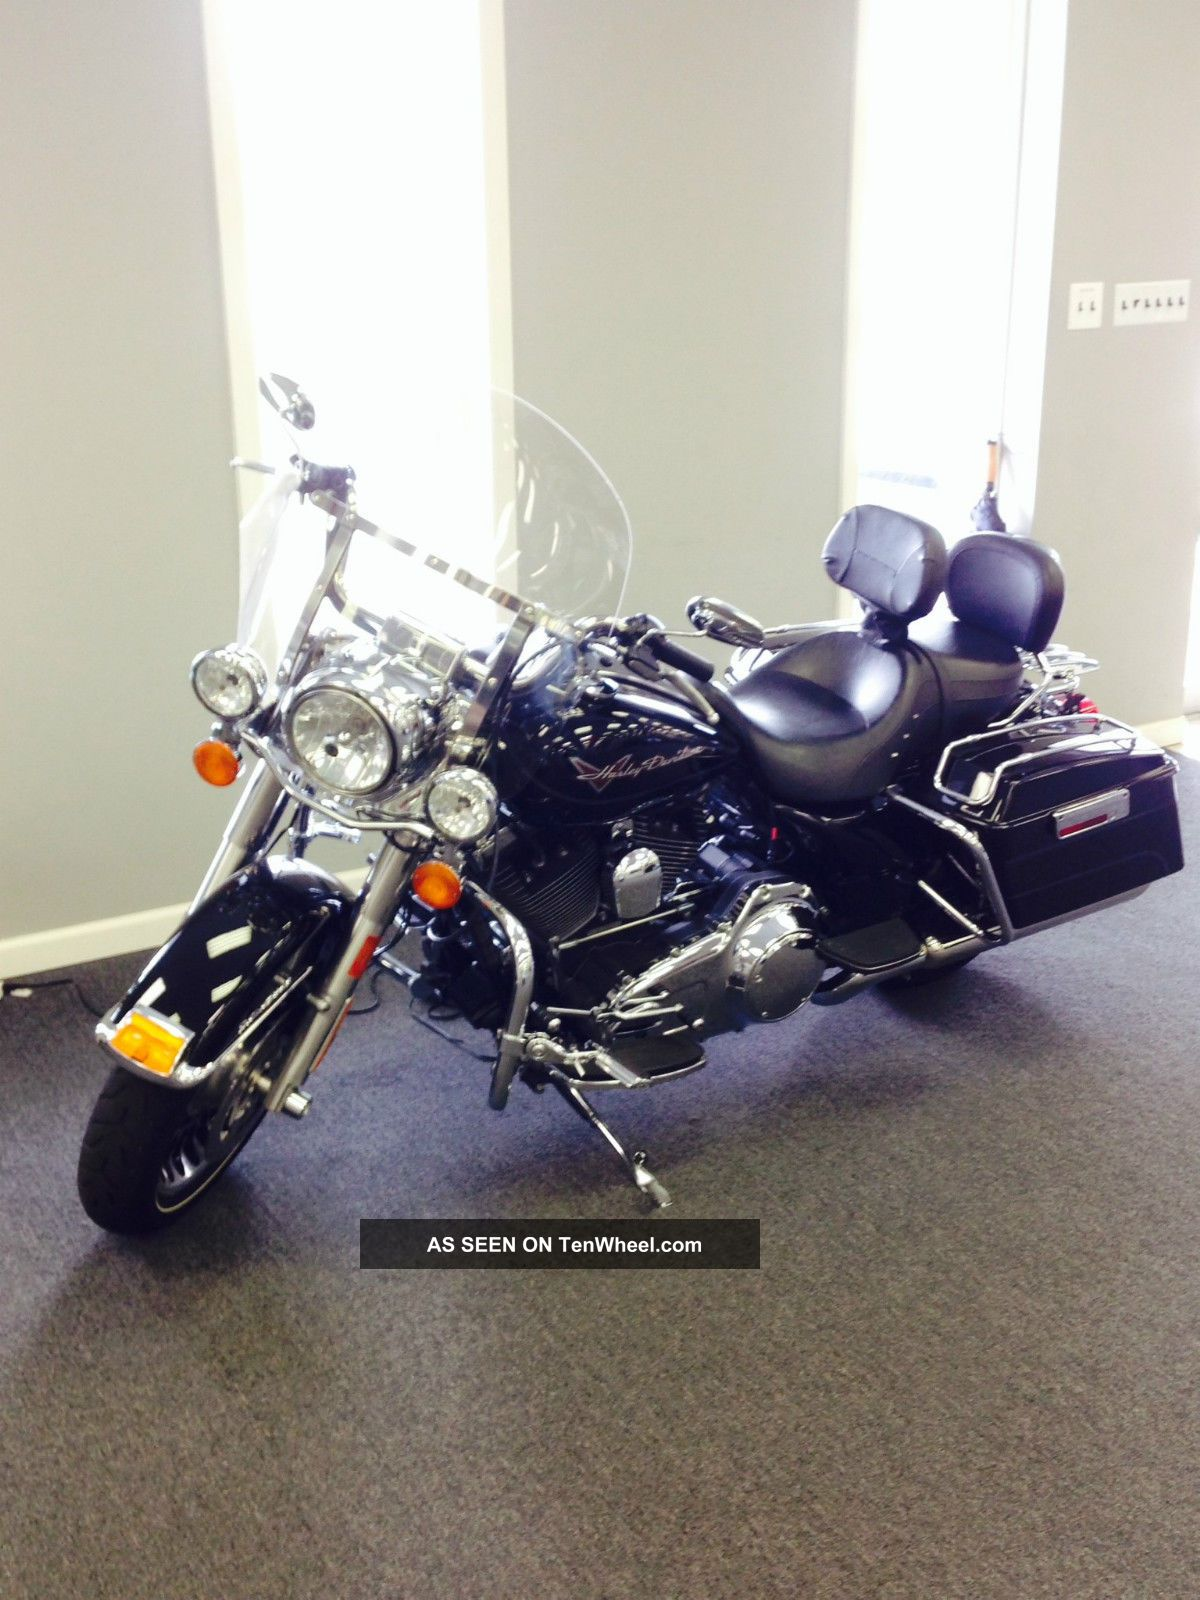 2010 Harley - Davidson Road King Flhr 1584 Cc V Twin Touring photo